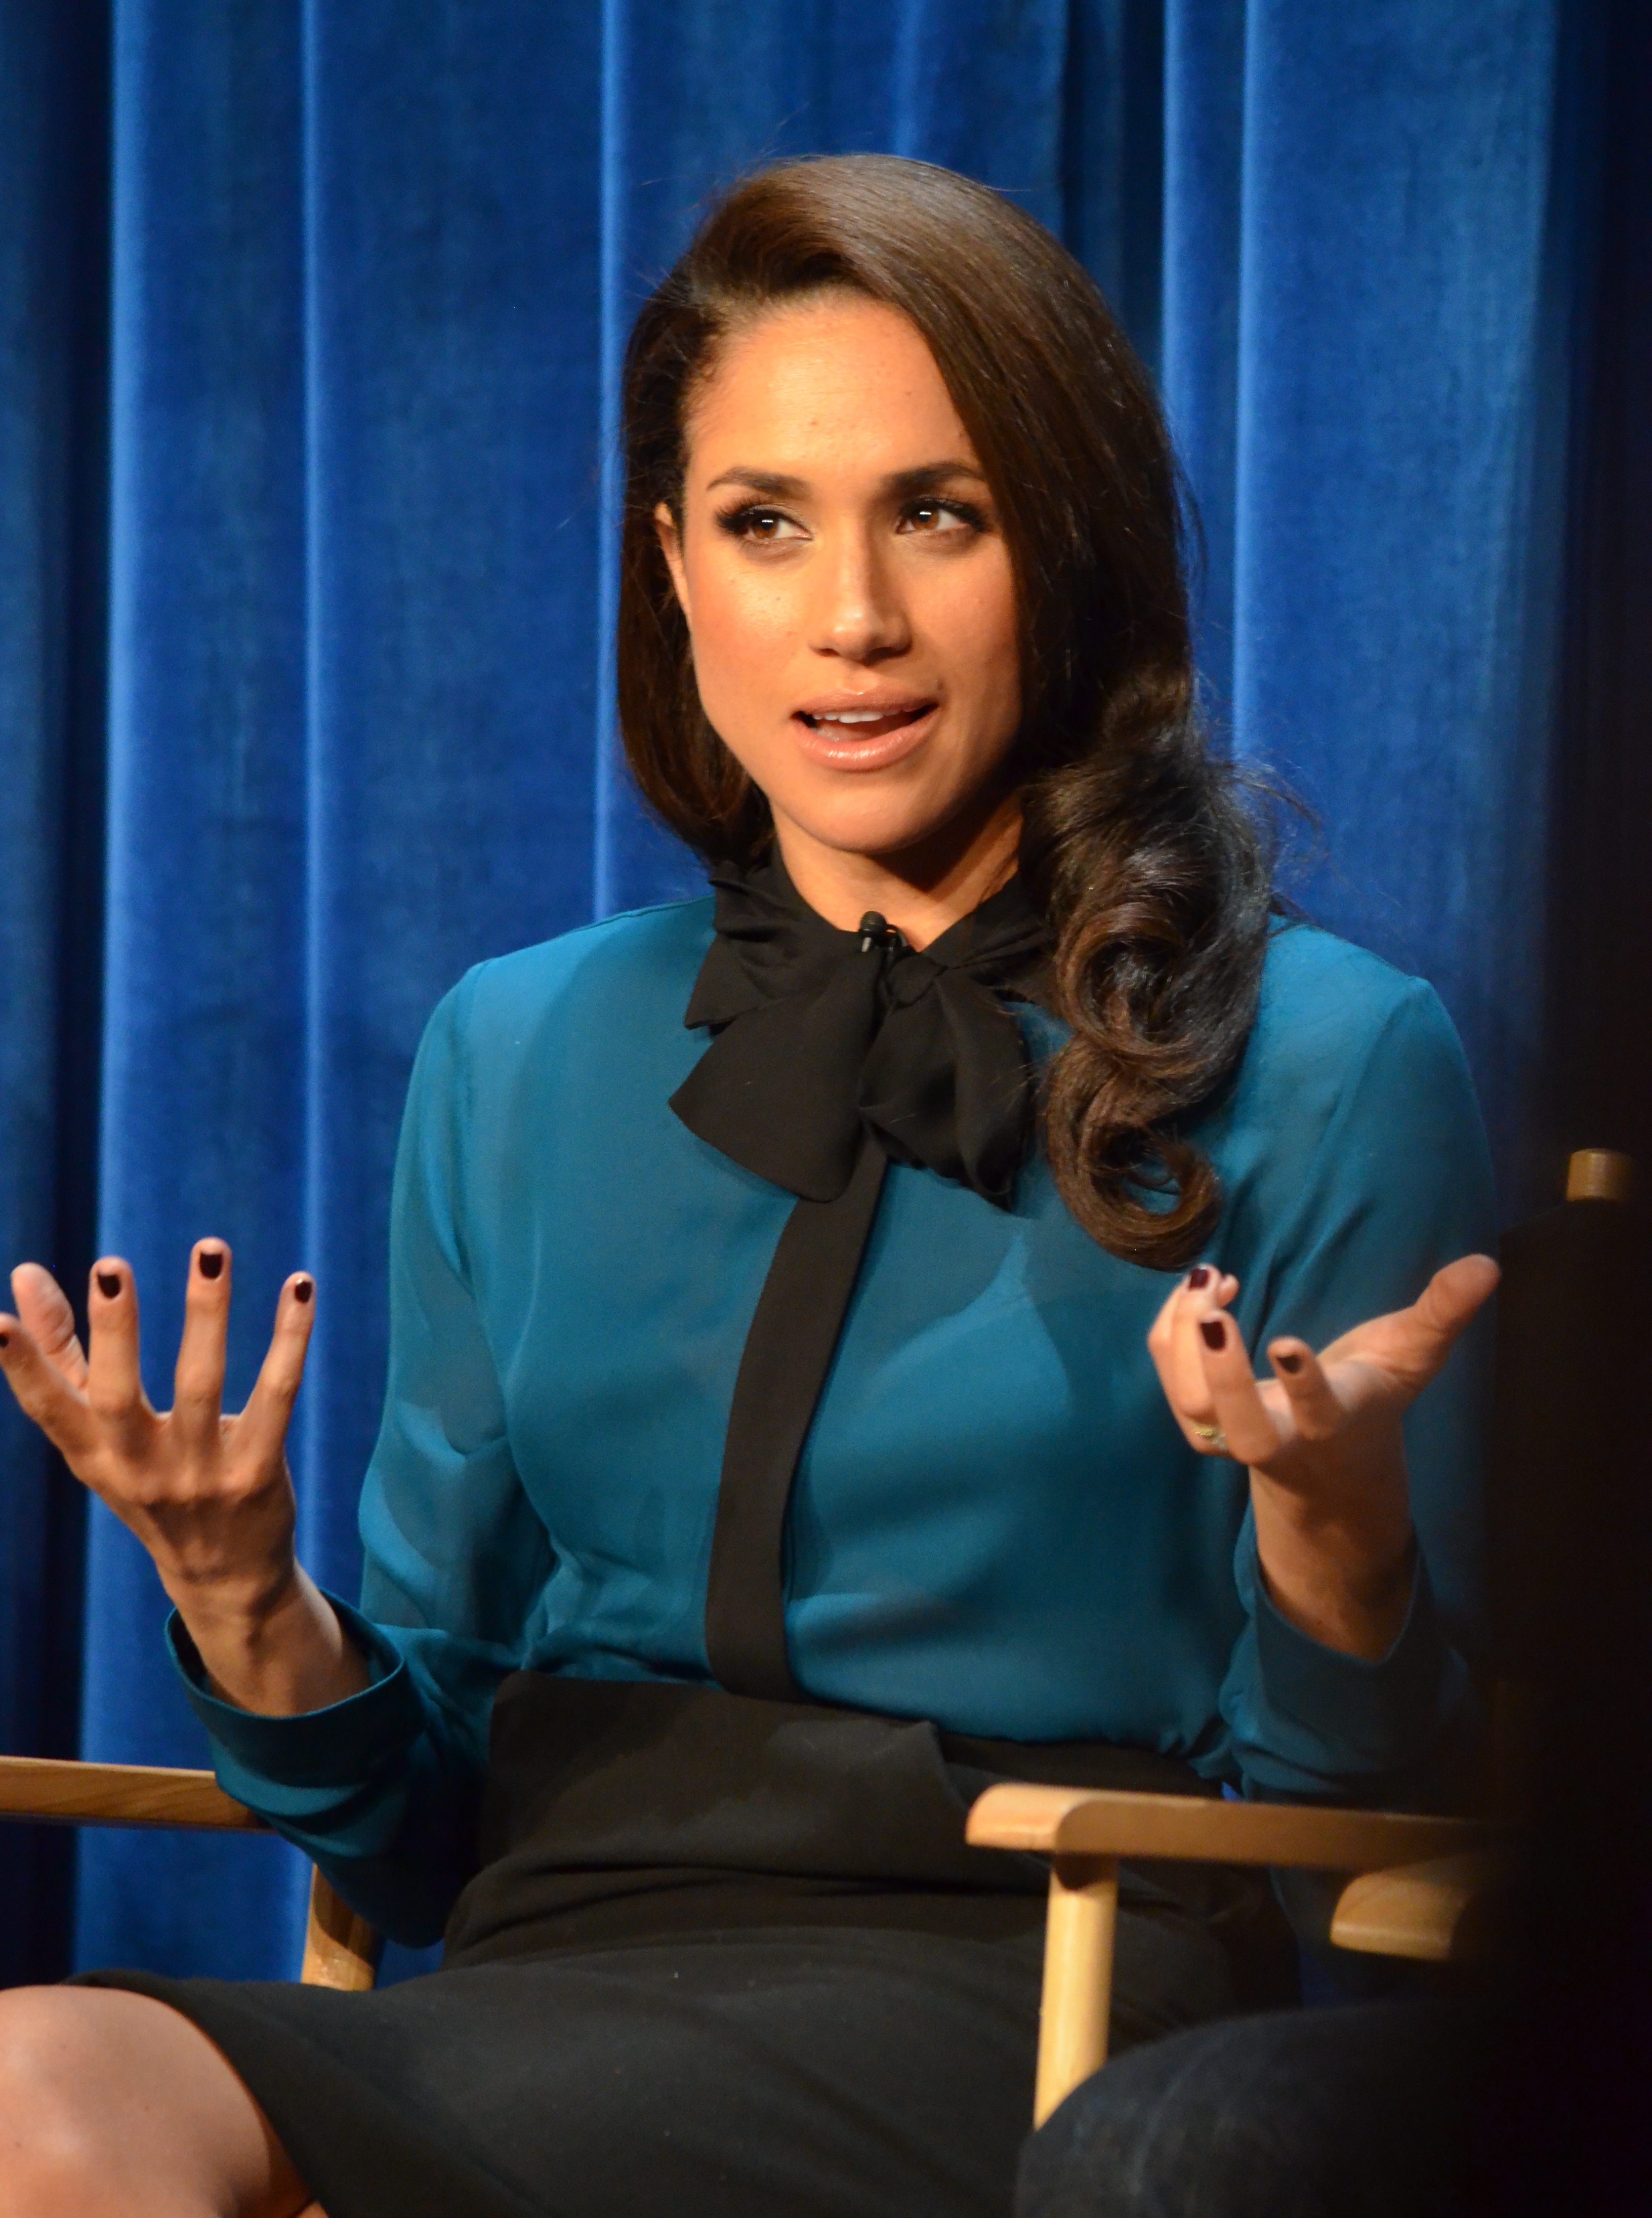 "© Genevieve (https://commons.wikimedia.org/wiki/File:Meghan_Markle_(Paley_Center_'Suits')_01_(cropped).jpg), ""Meghan Markle (Paley Center 'Suits') 01 (cropped)"", https://creativecommons.org/licenses/by/2.0/legalcode"